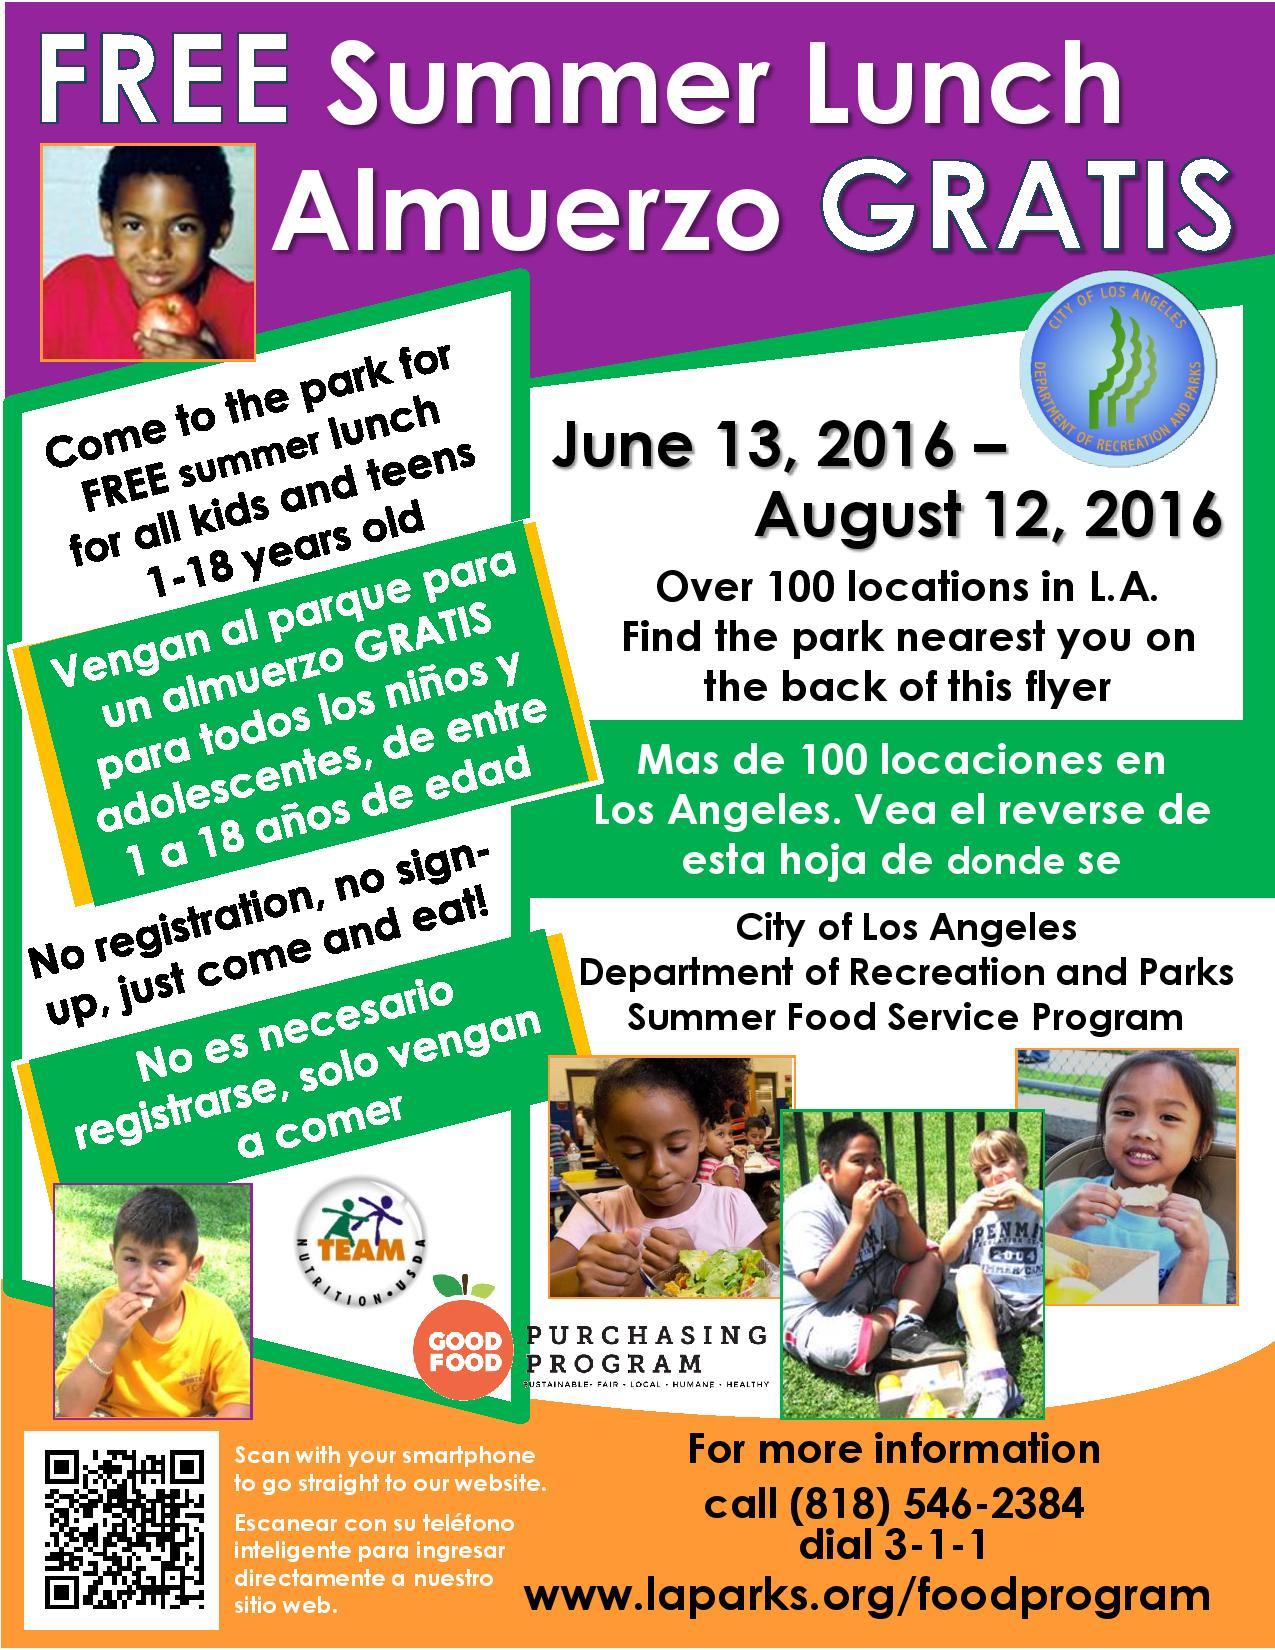 2016_summer_lunch_flyer_color_for_web-page-001.jpg